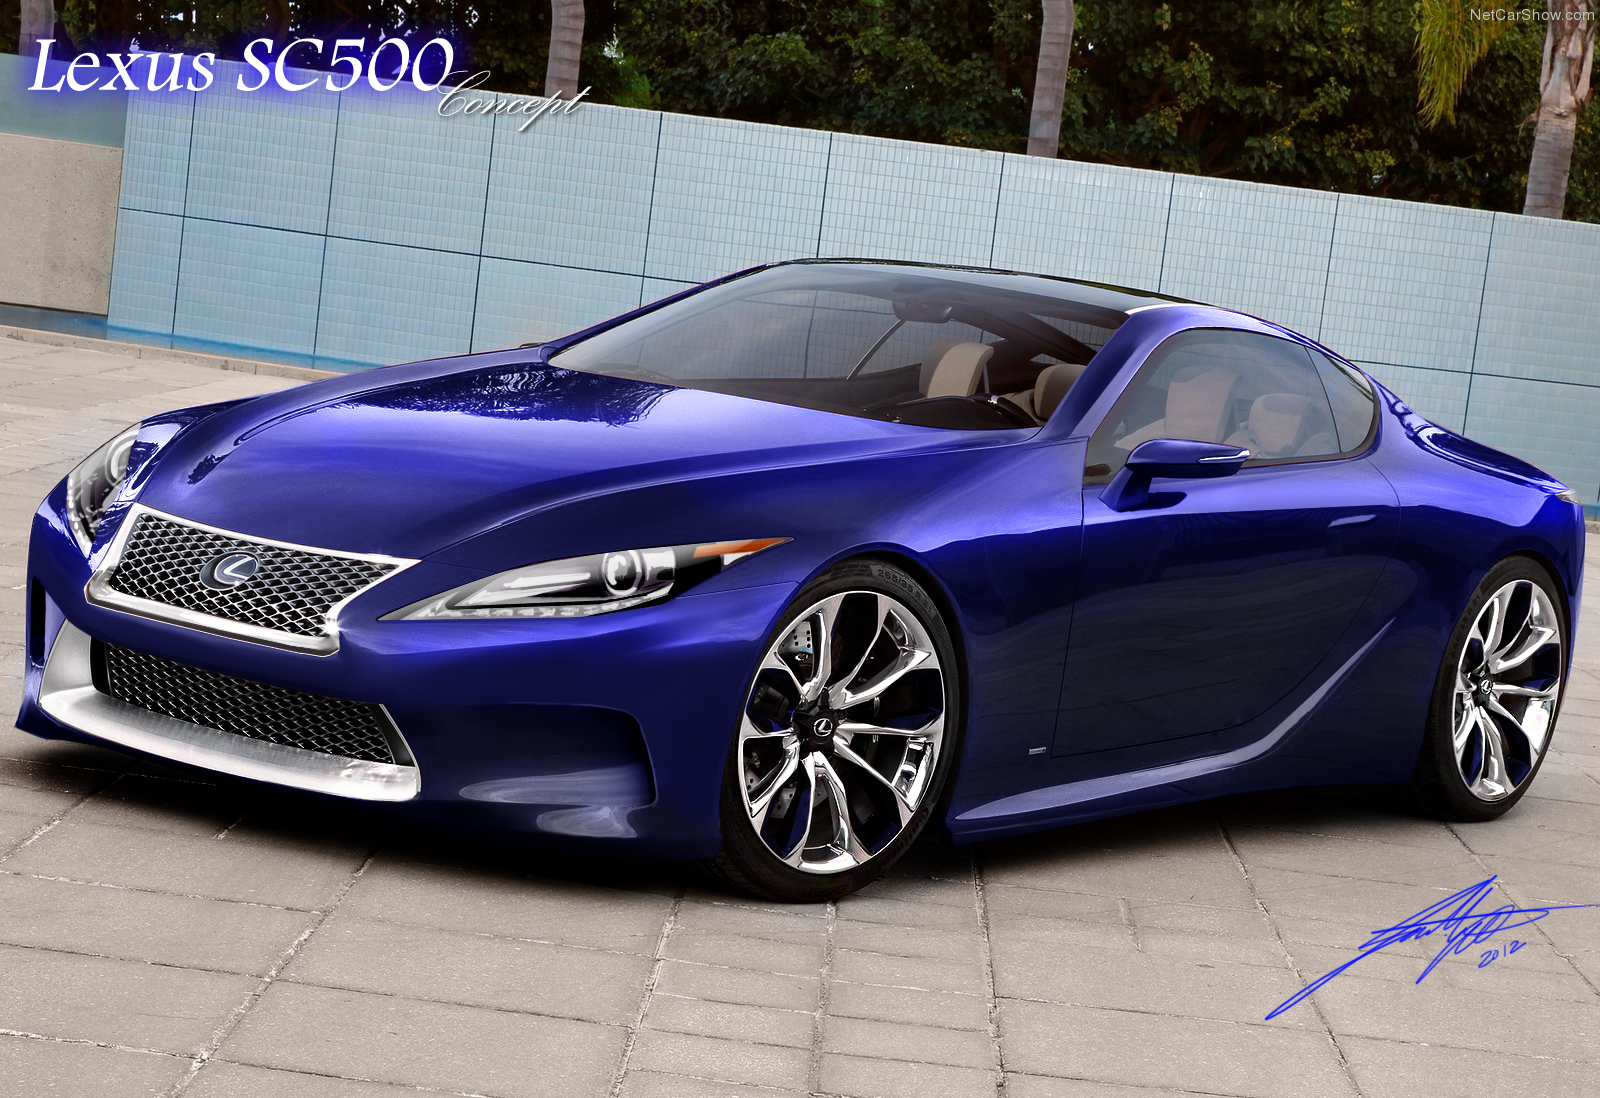 Lexus SC500 Concept by wingsofwar on DeviantArt